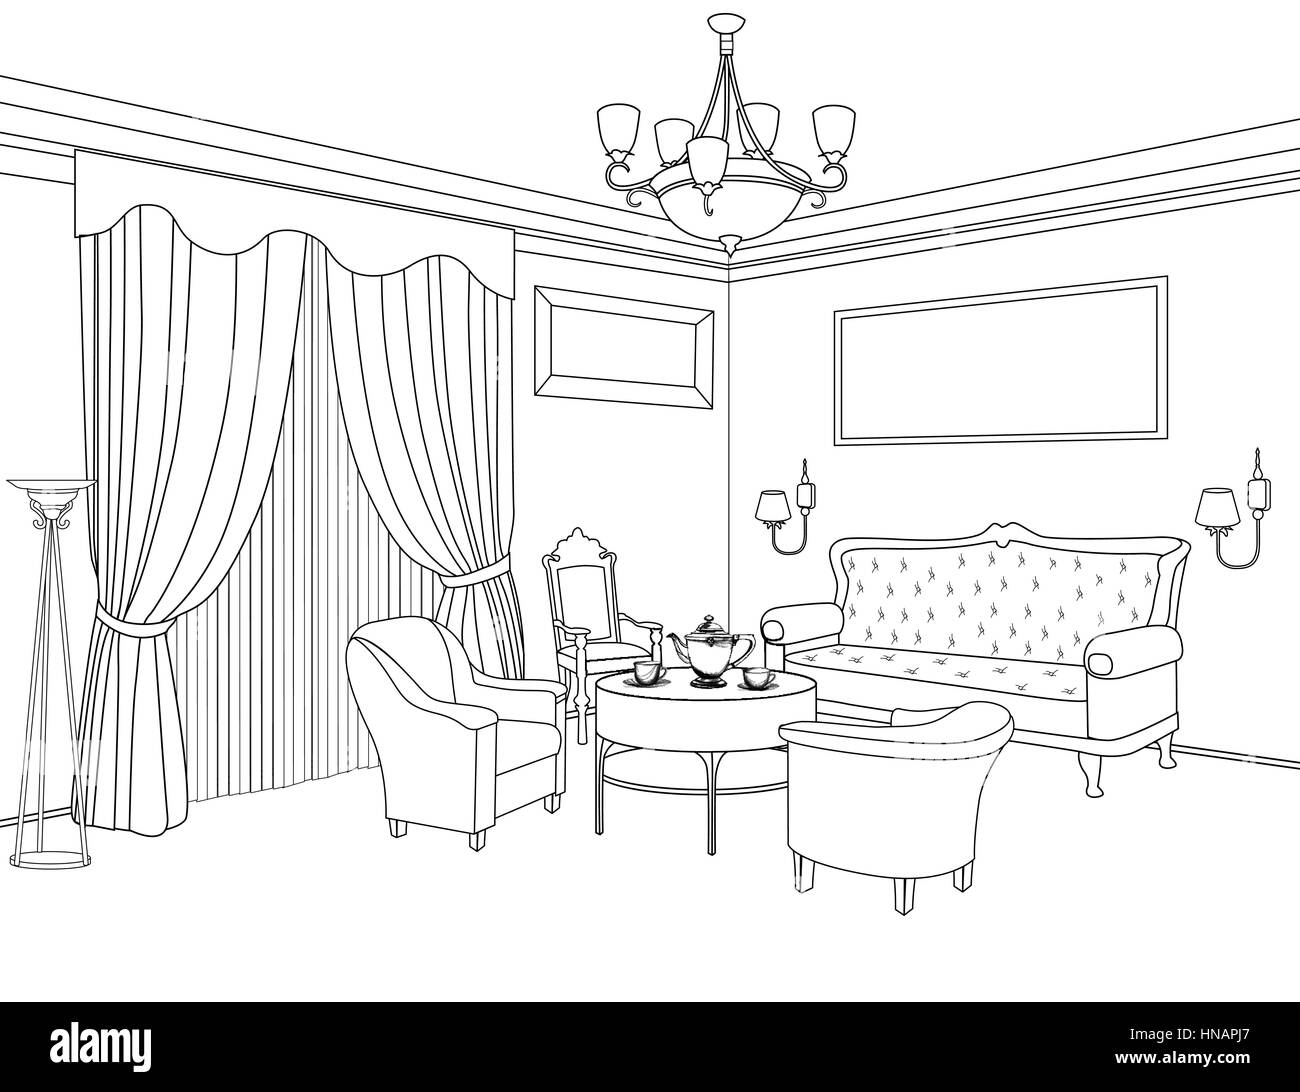 Interior outline sketch furniture blueprint architectural design interior outline sketch furniture blueprint architectural design living room malvernweather